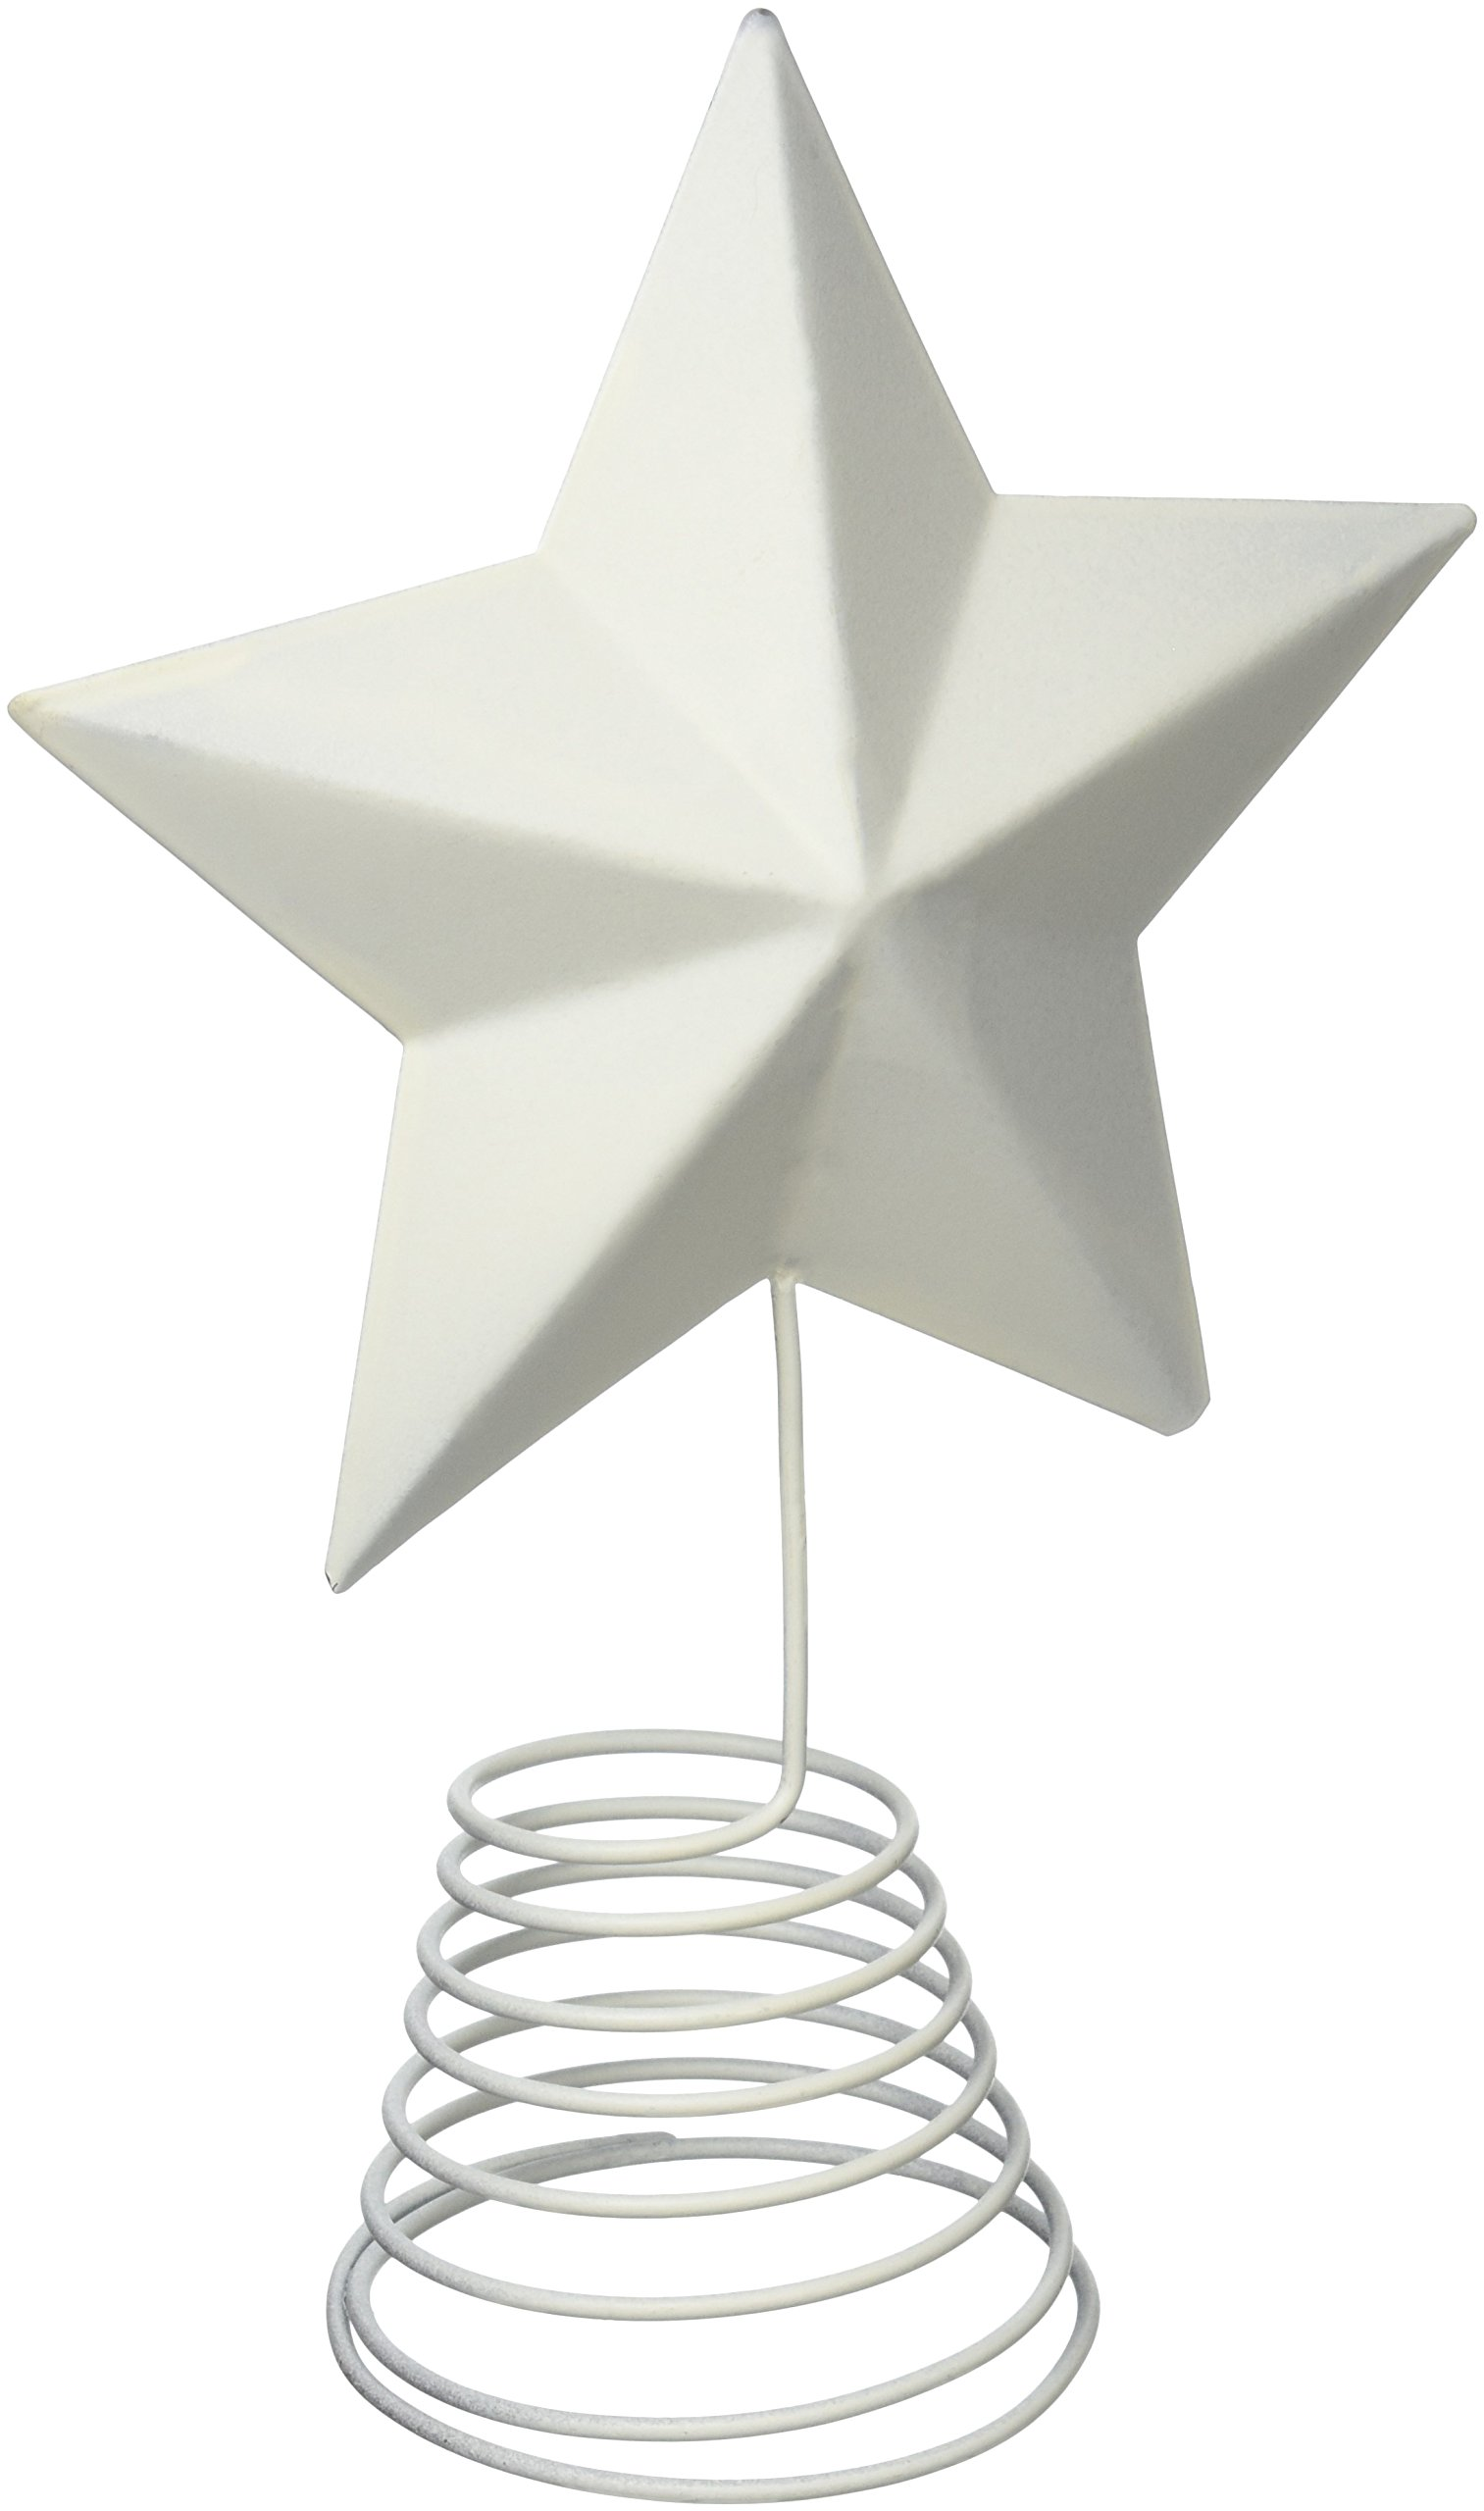 Craft Outlet Tin Star on Wire Table Topper, 12.5-Inch, Off-White, Set of 2 by Craft Outlet Inc